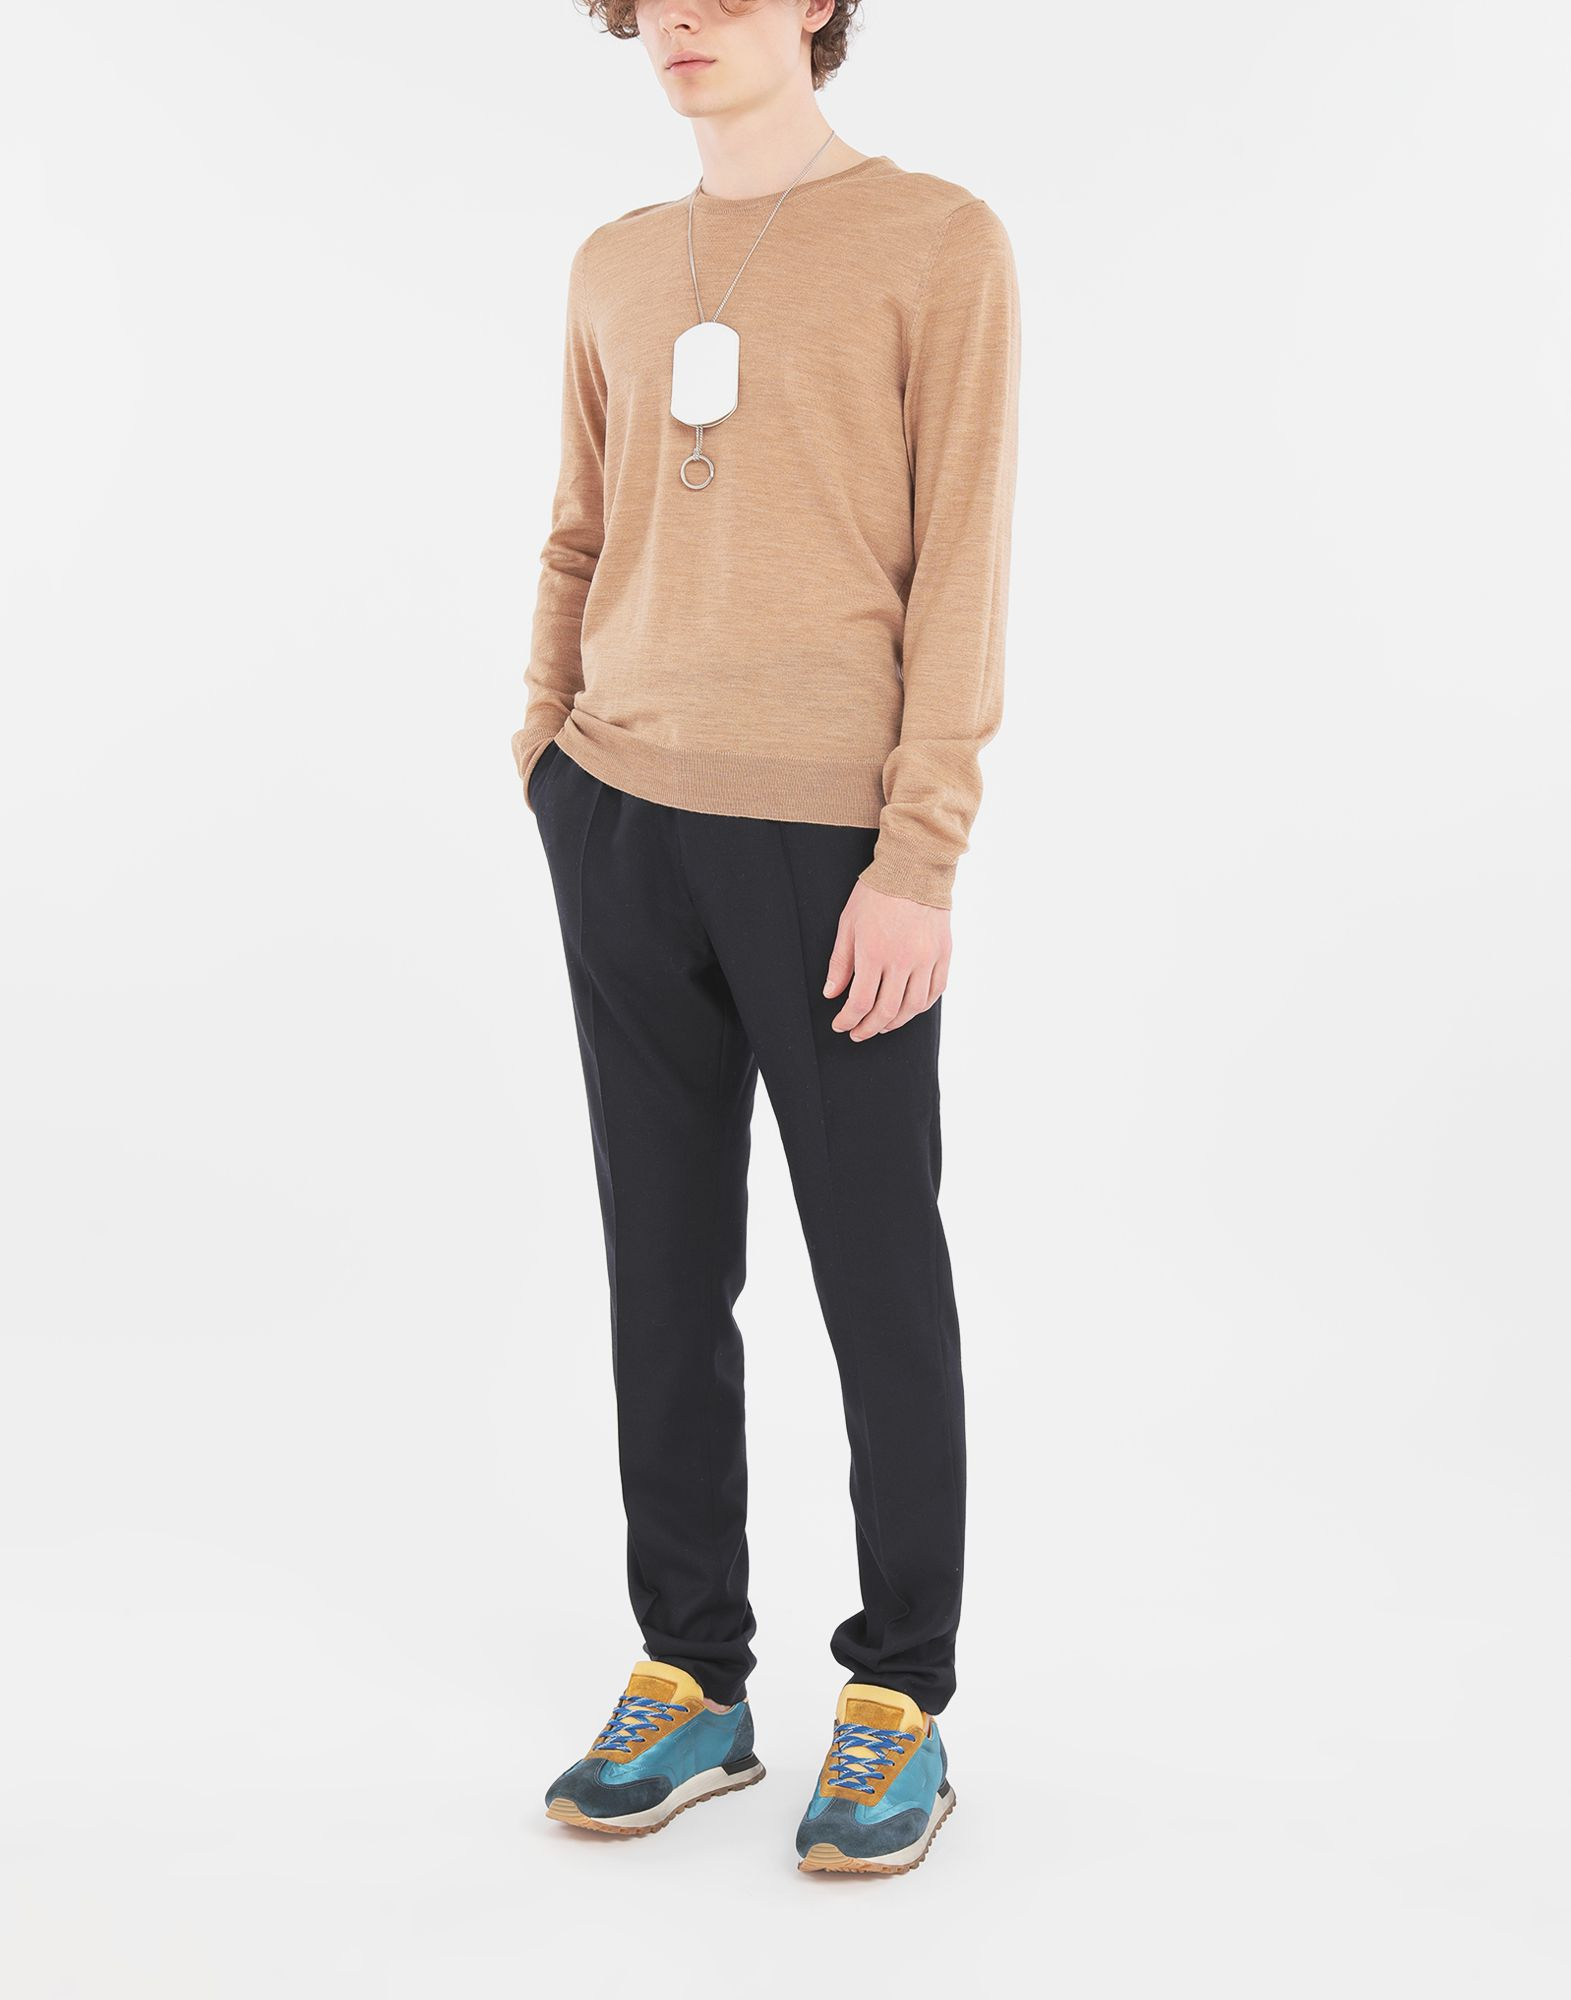 MAISON MARGIELA Wool sweater Crewneck Man e